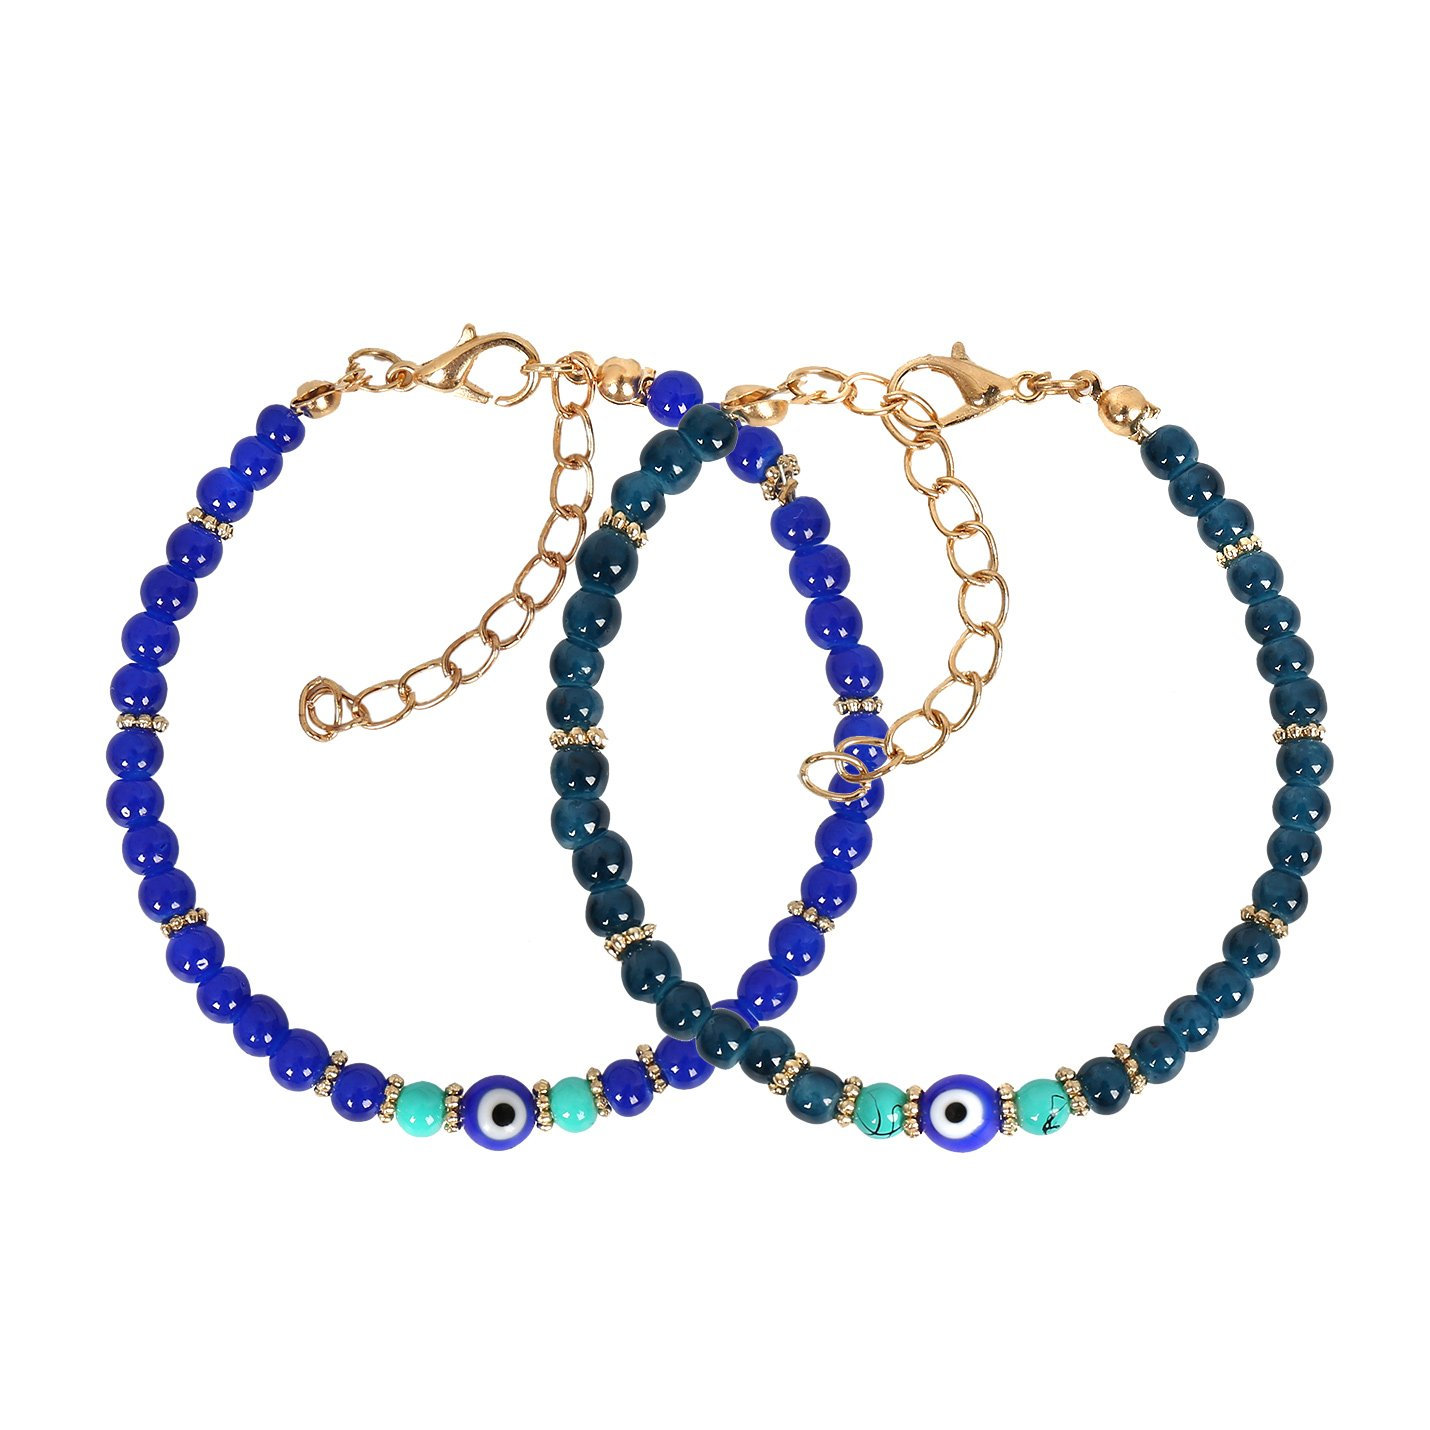 Evil Eye Protection Love Couples Amulets Set Royal Ocean Blue Simulated Turquoise Charm Bracelets